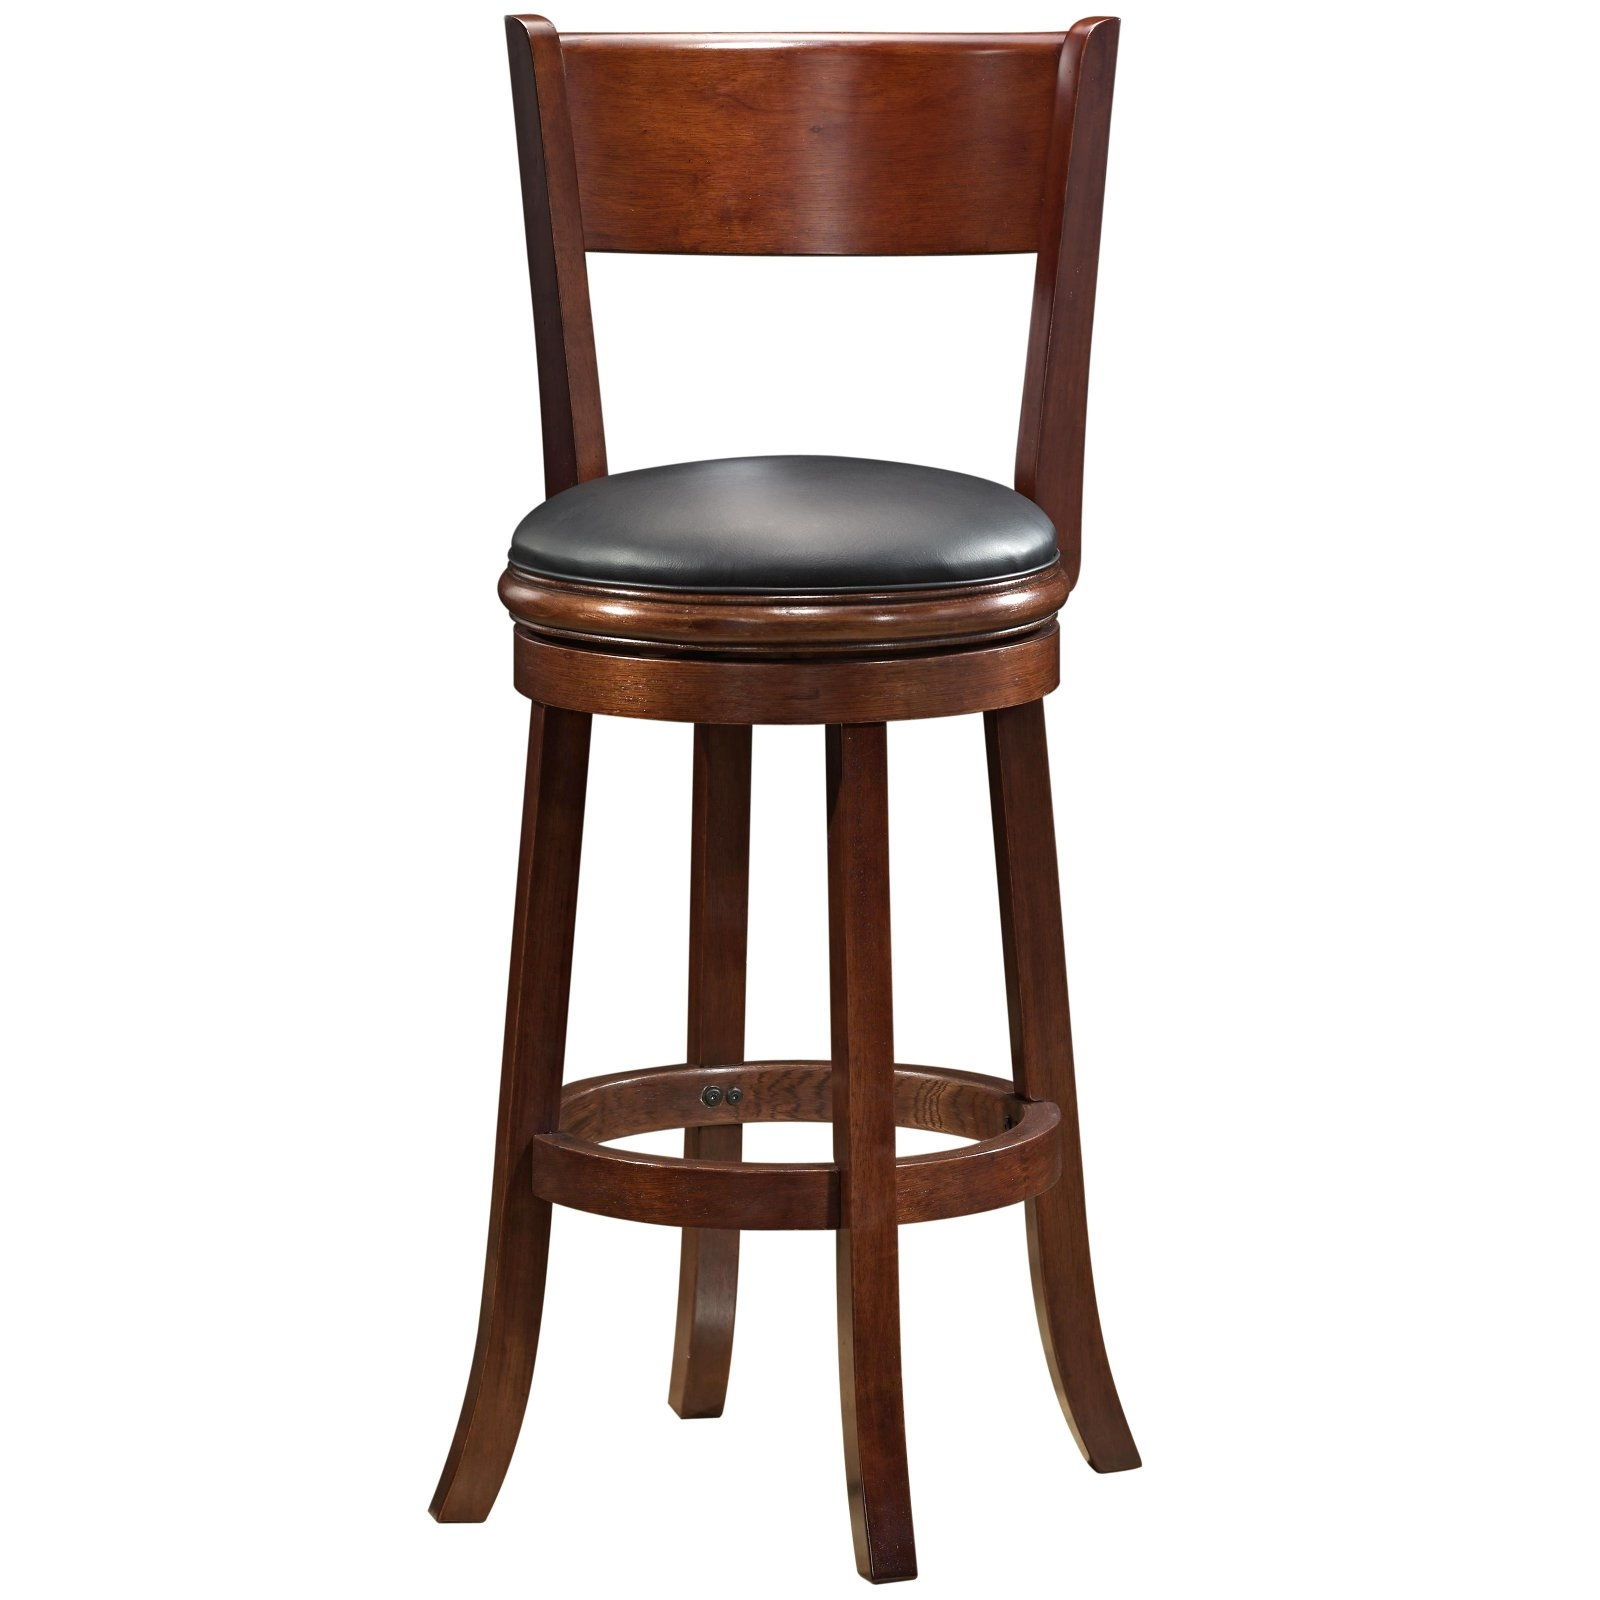 Shelby swivel bar stool